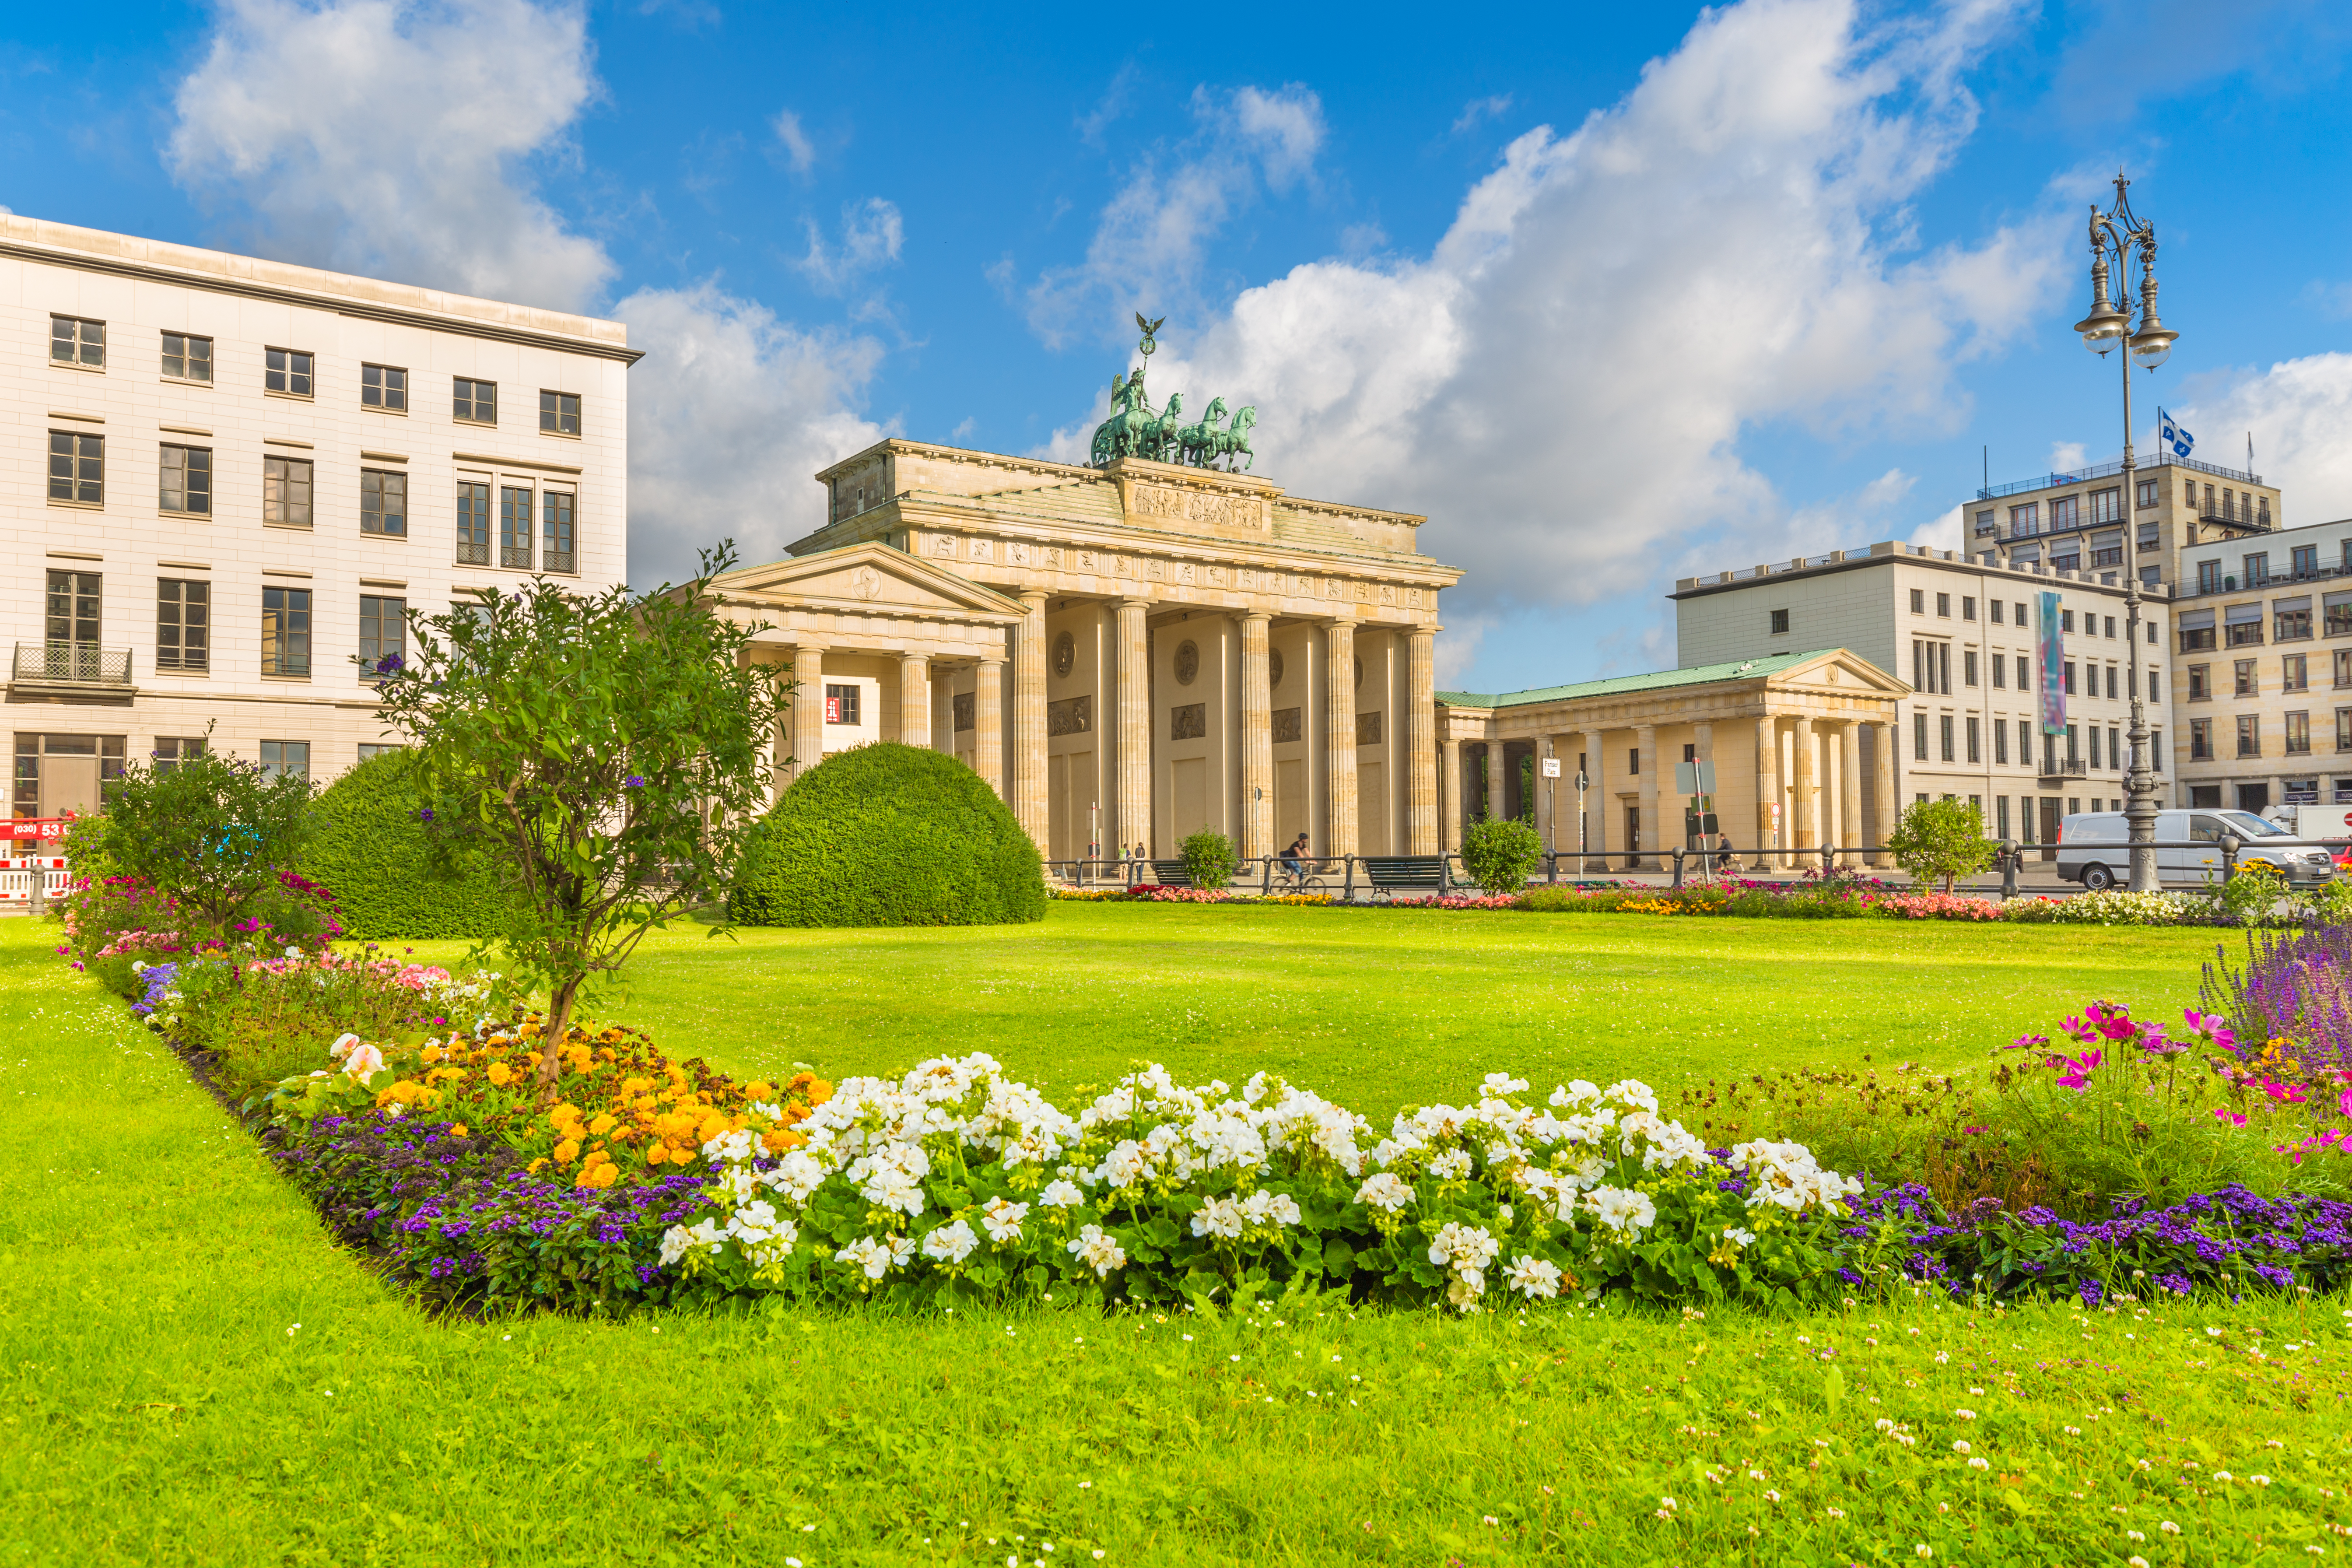 How kindergartens abroad are arranged: features of gardens in Germany